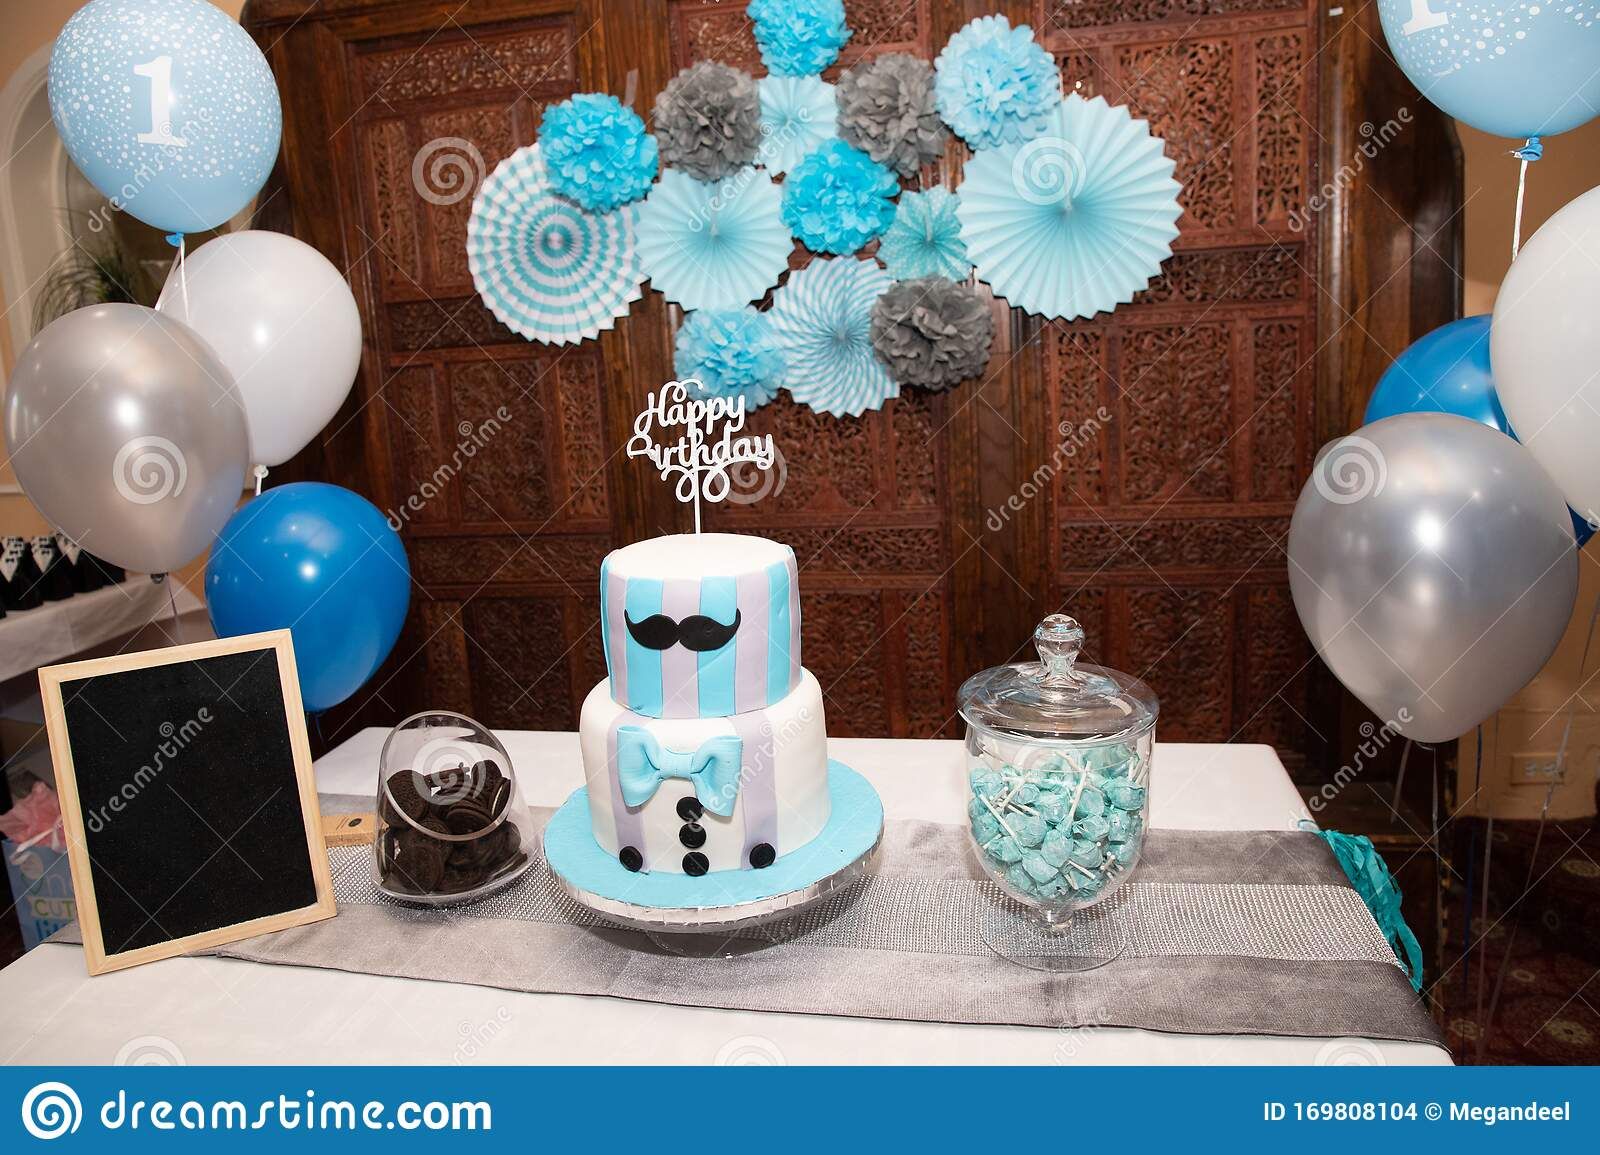 Cheap First Birthday Party Decorations  from thumbs.dreamstime.com